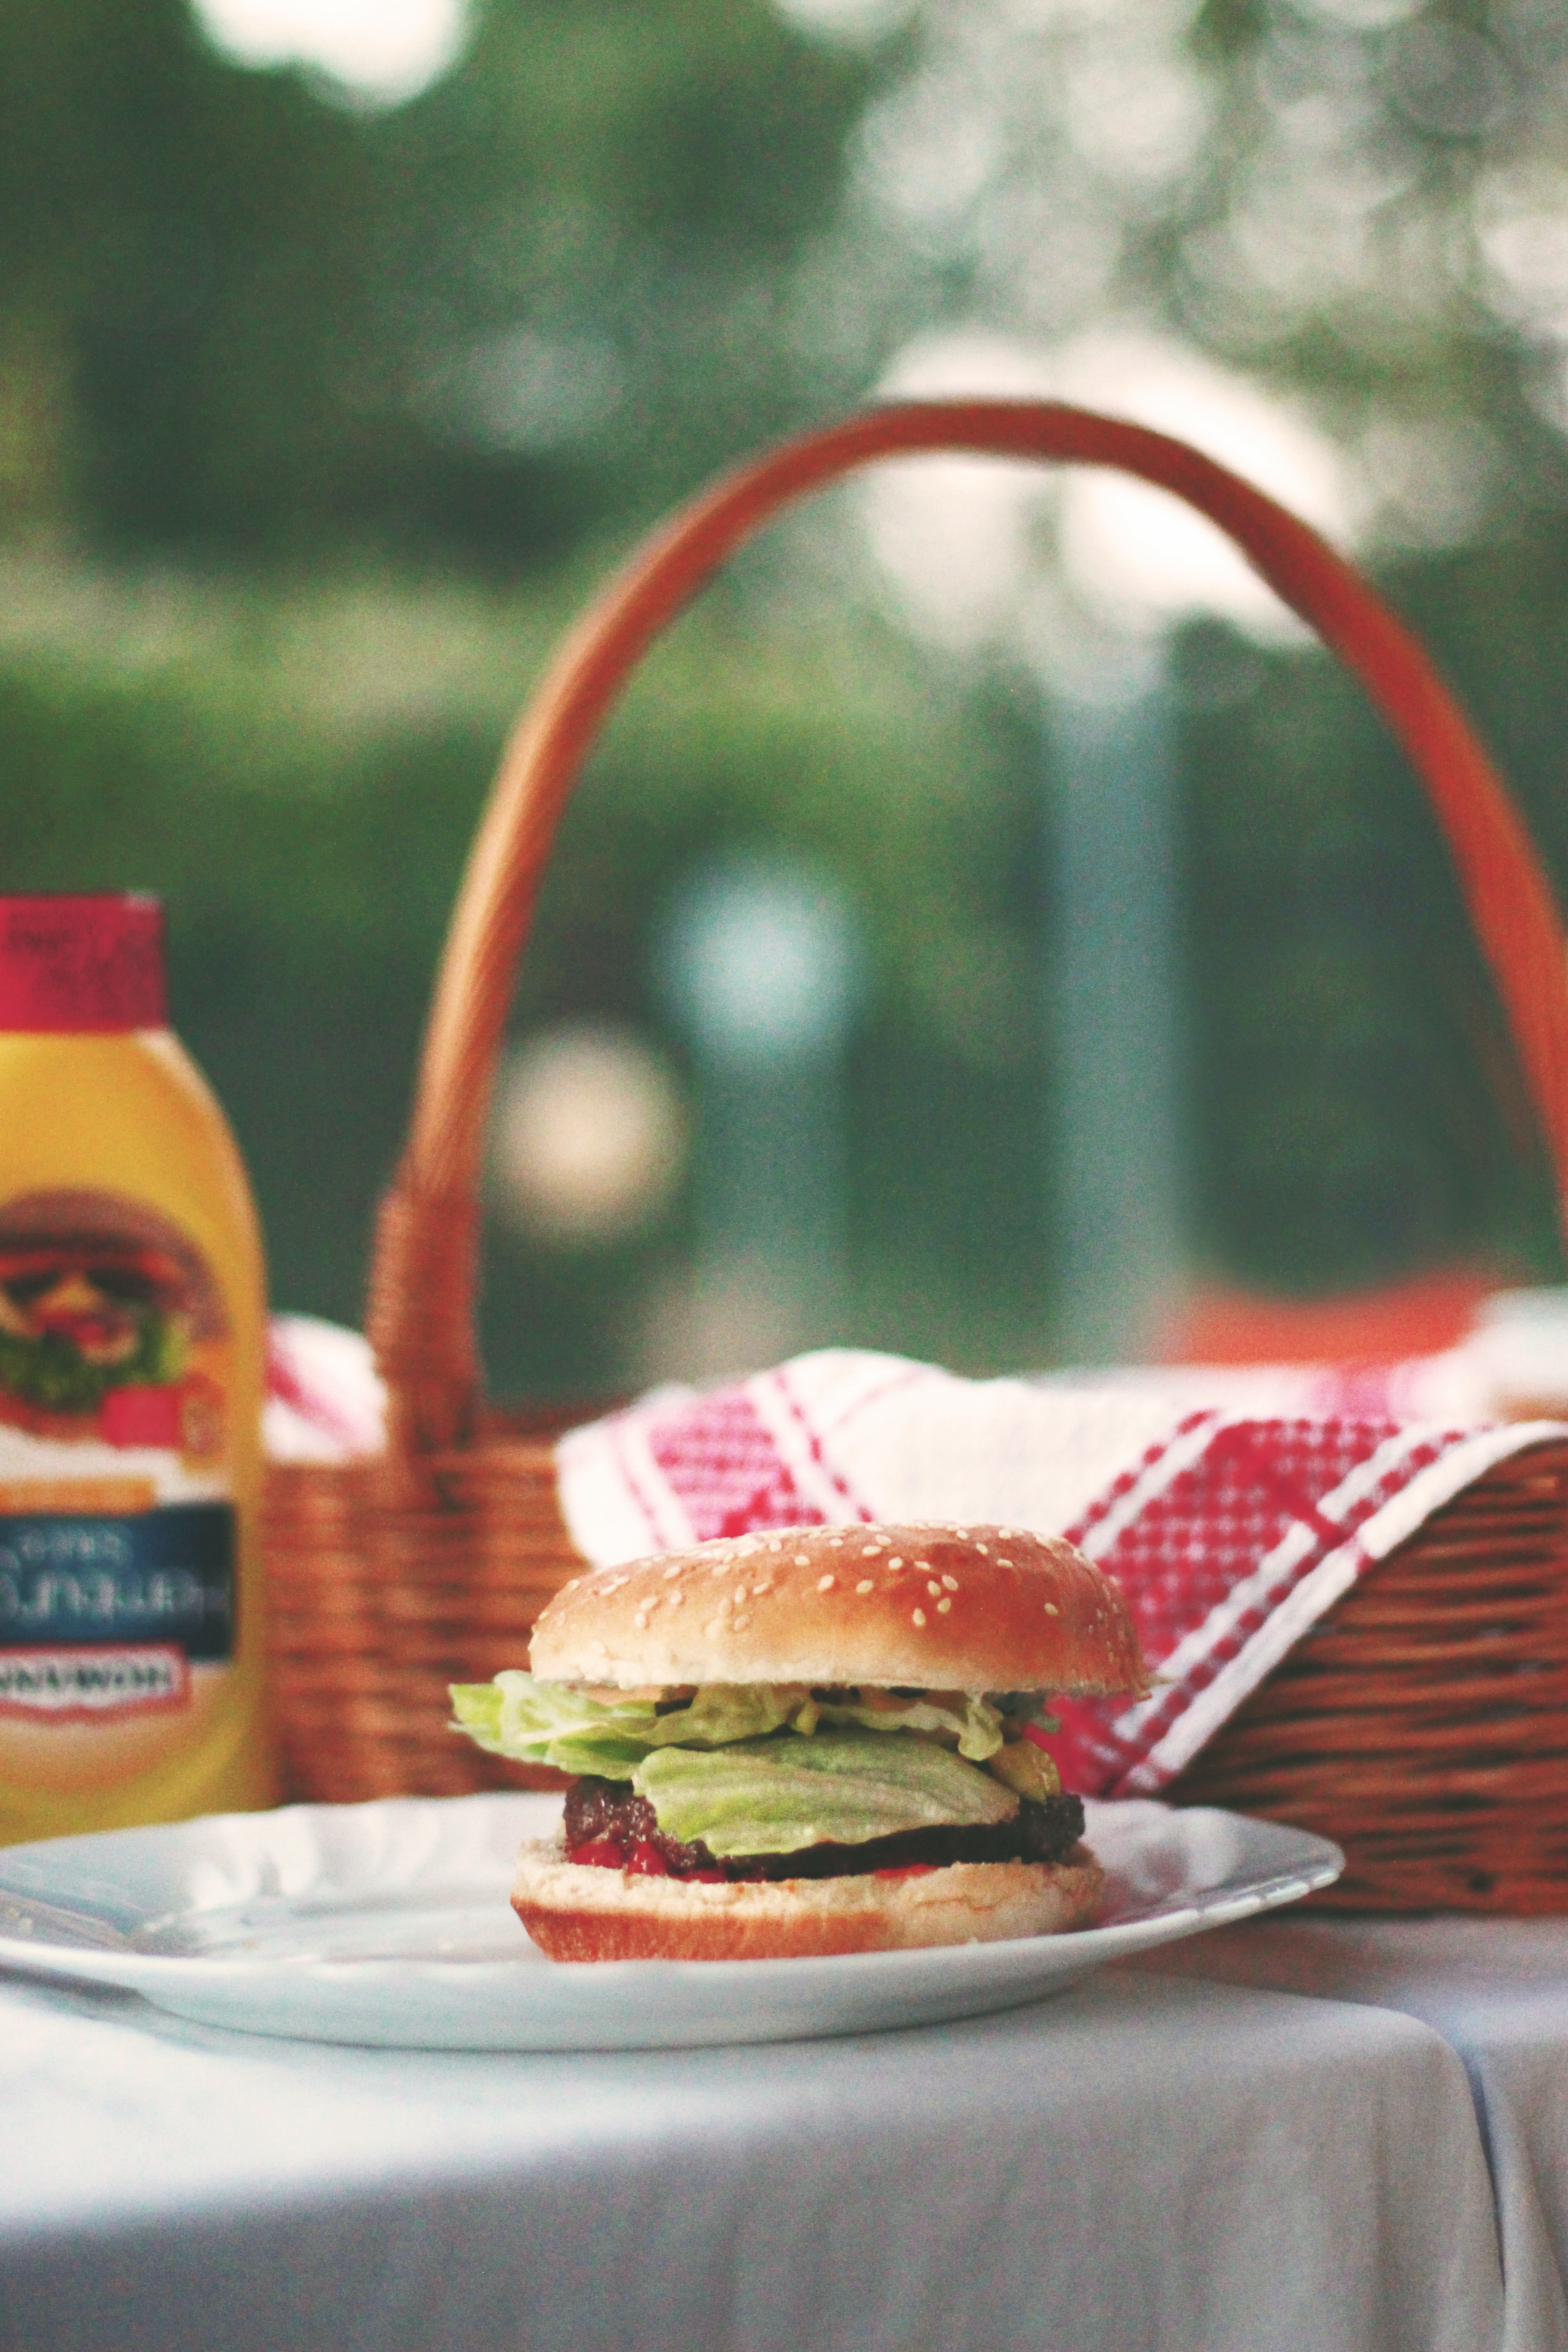 American hamburger on a picnic table by a basket